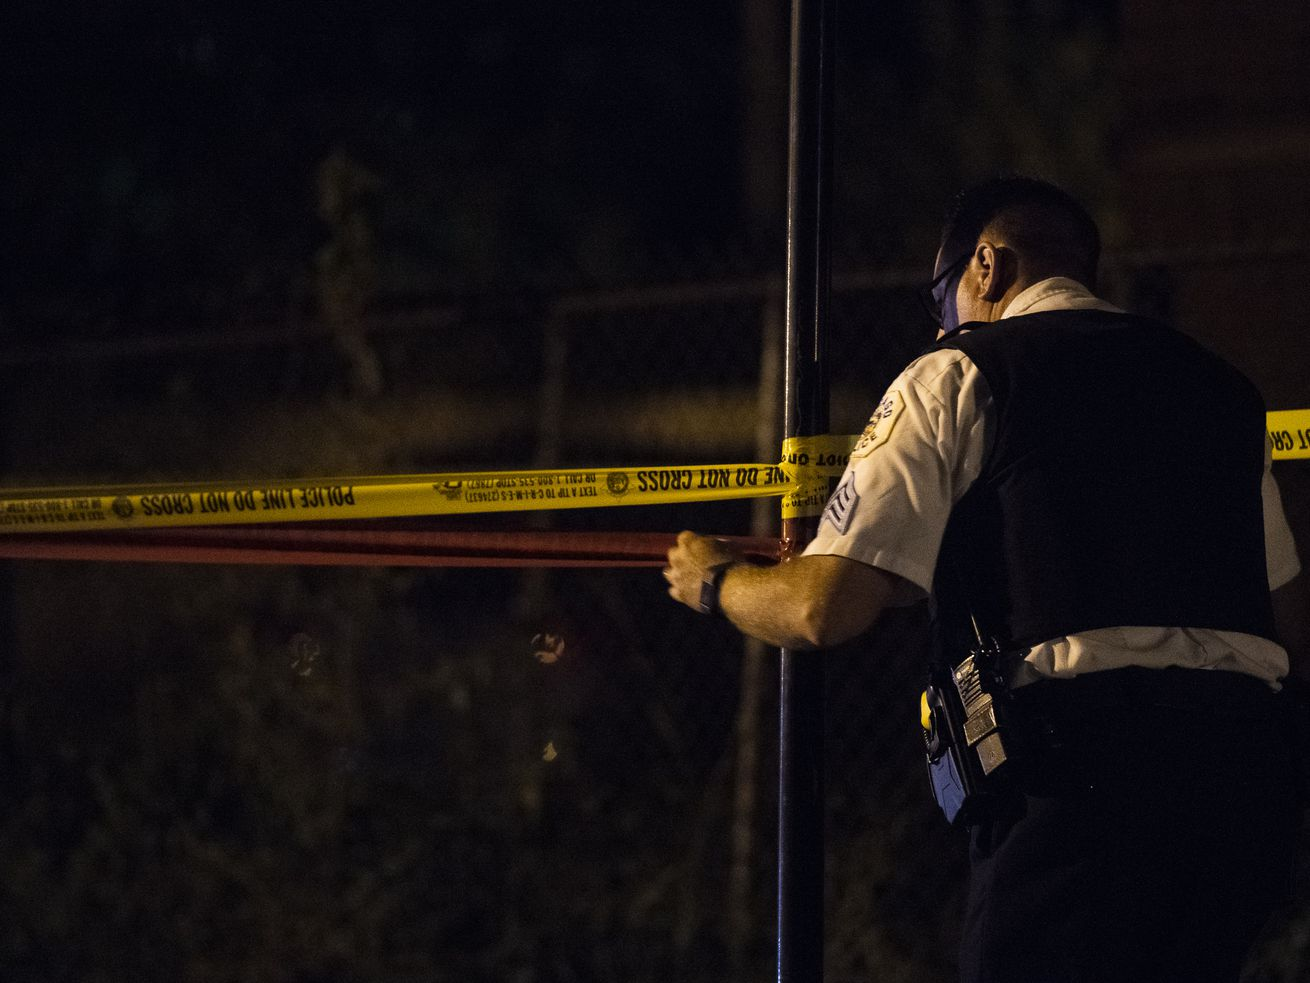 Eight people have been shot since 5 p.m. April 2, 2021.